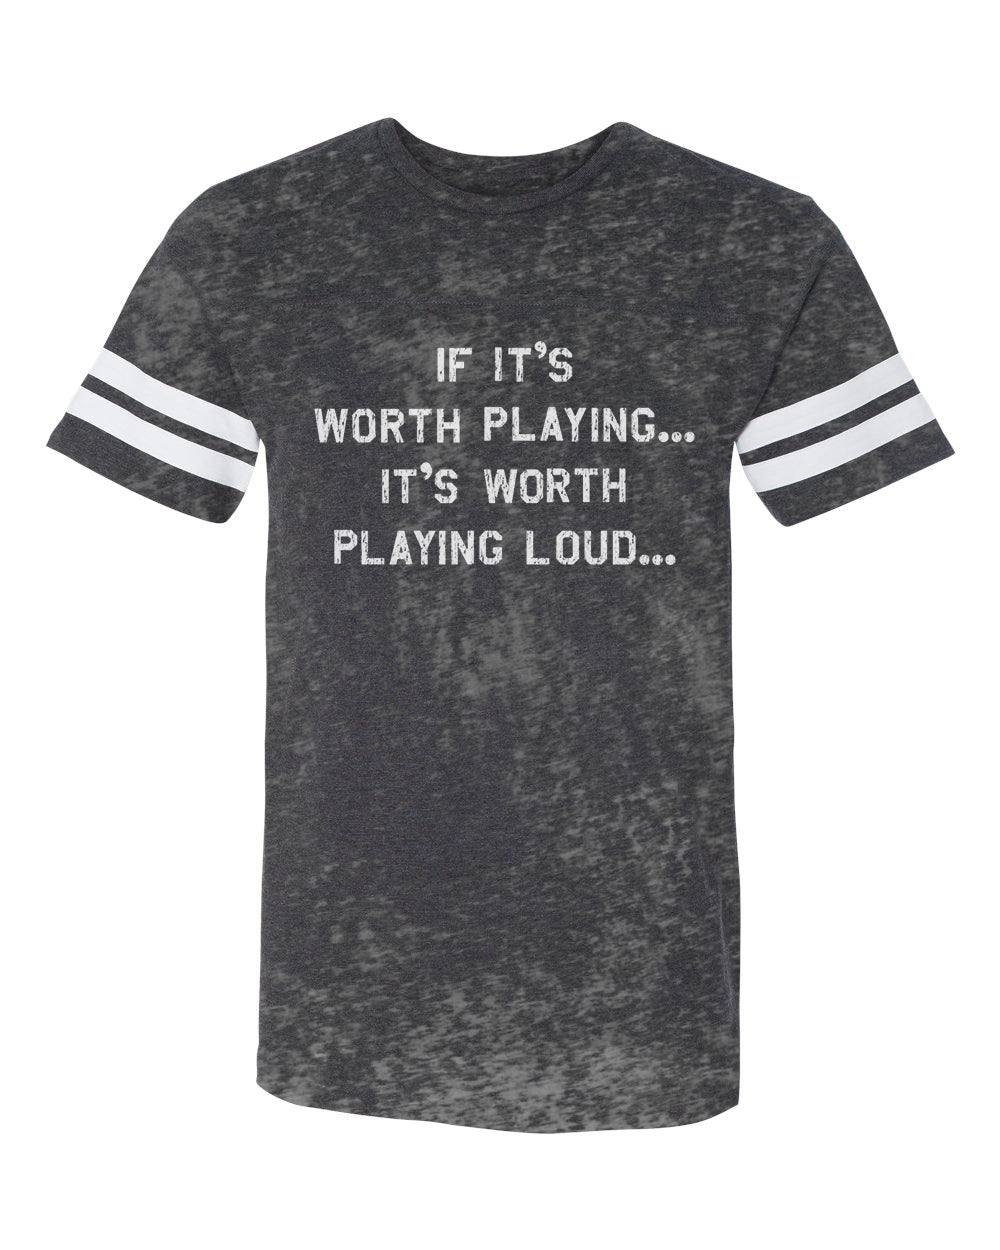 If It's Worth Playing It's Worth Playing Loud Burnout Football Tee - Men's Tee Shirt - Midnight Rider